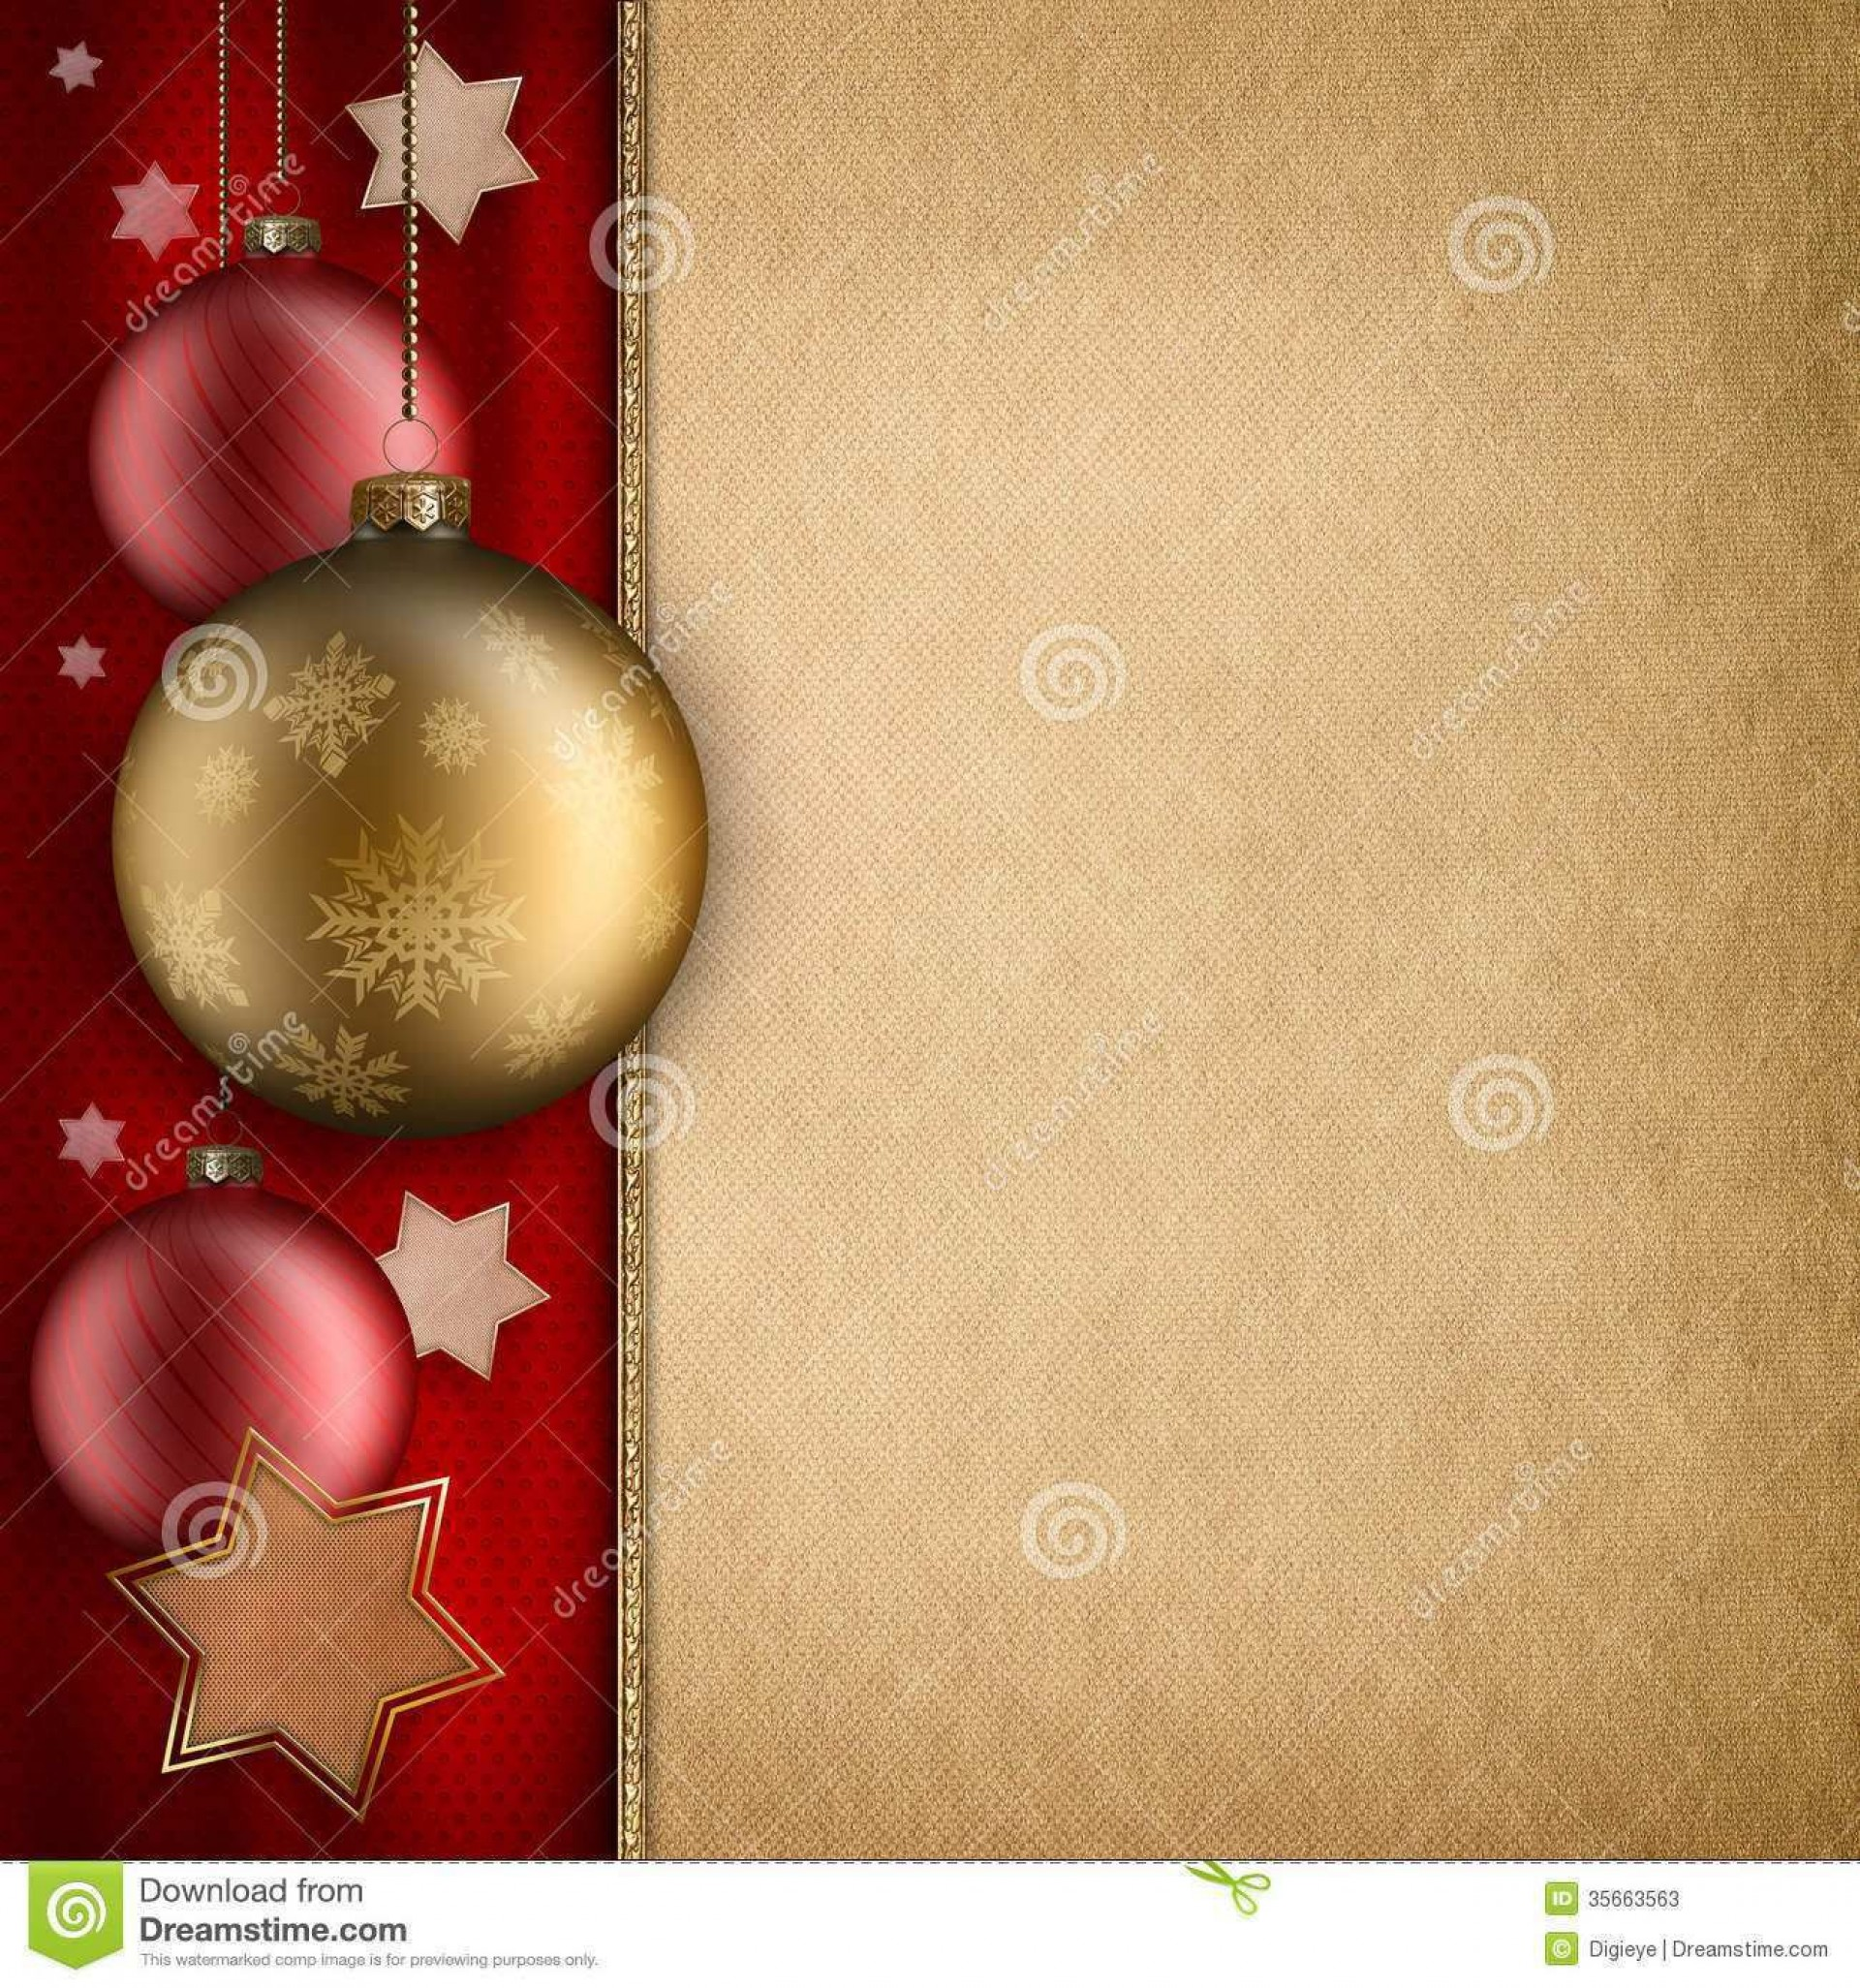 001 Fascinating Free Download Holiday Card Template High Definition 1920